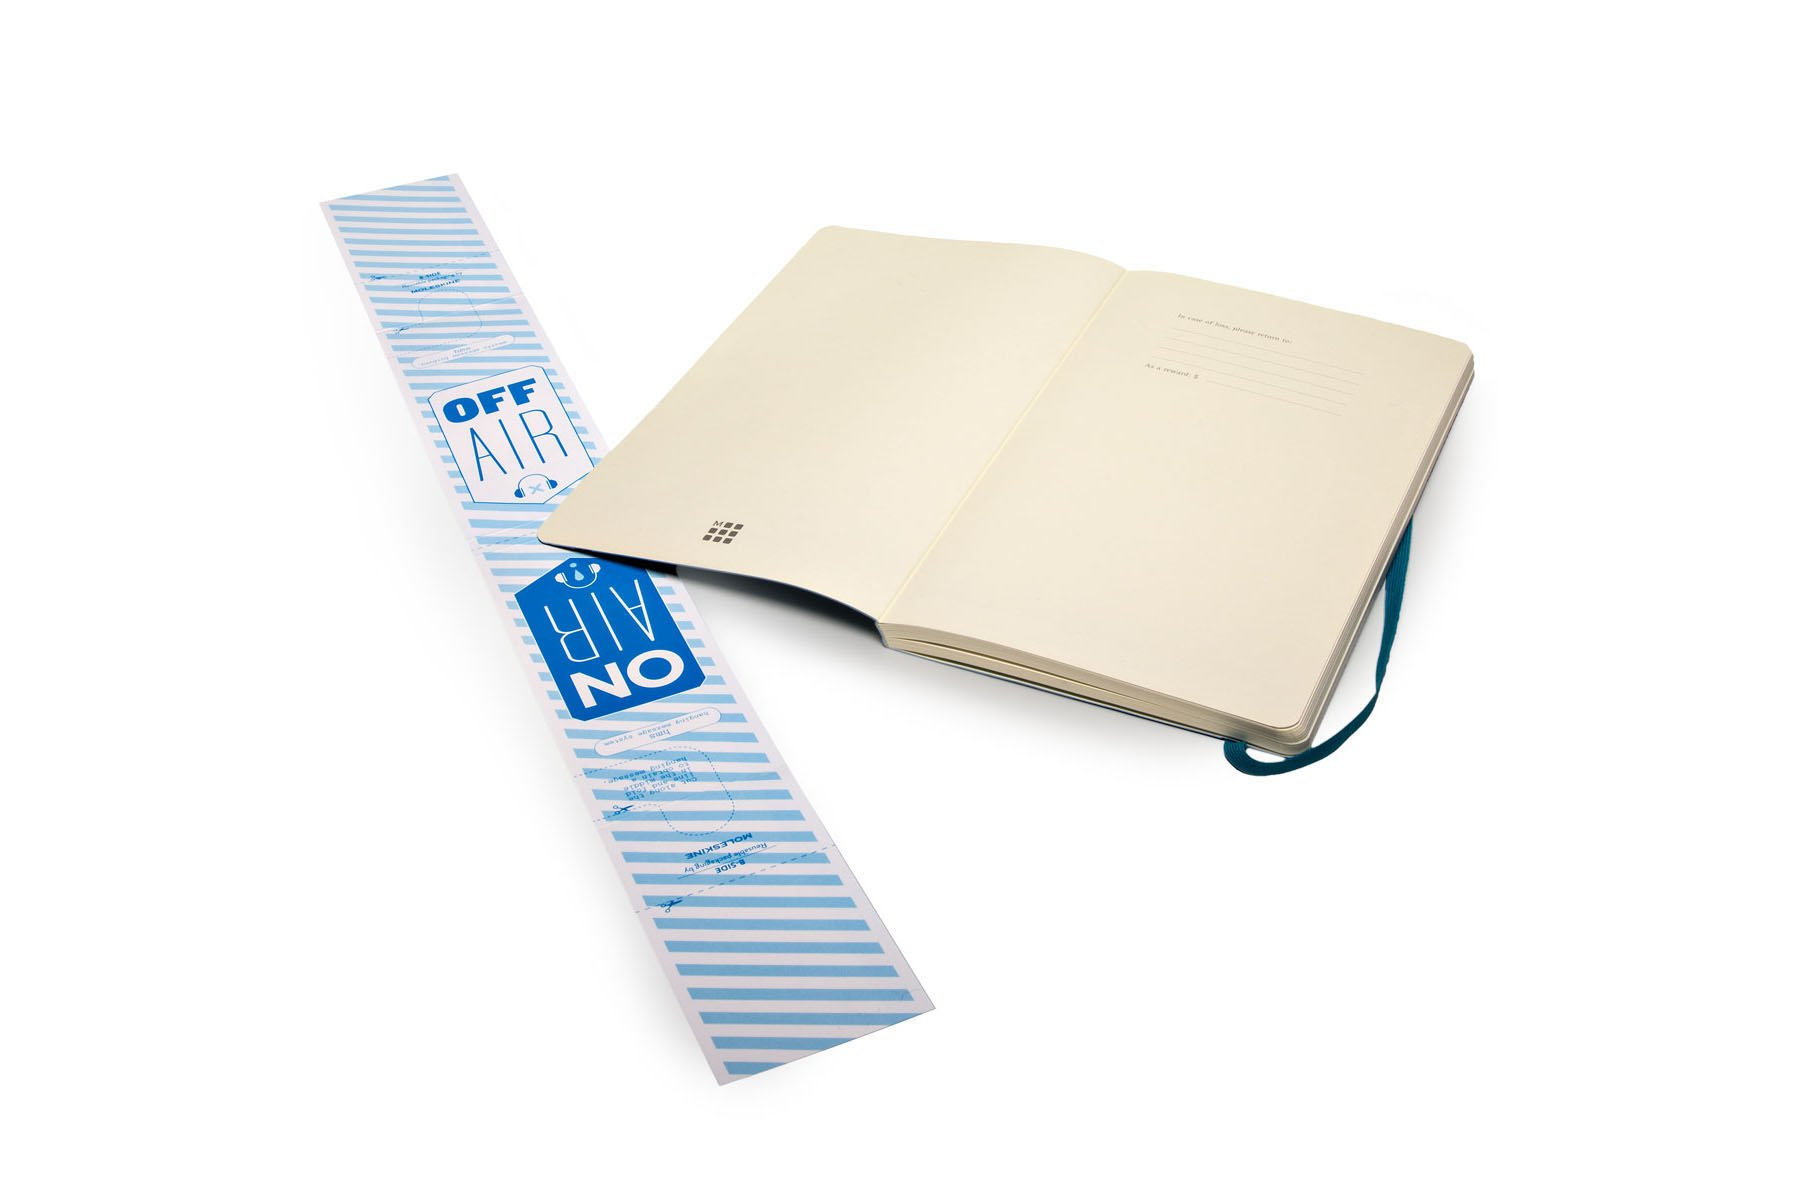 Moleskine Classic Notebook Large (5 x 8.25''), Dotted Pages, Underwater Blue, Soft Cover Notebook for Writing, Sketching, Journals by Ingramcontent (Image #7)